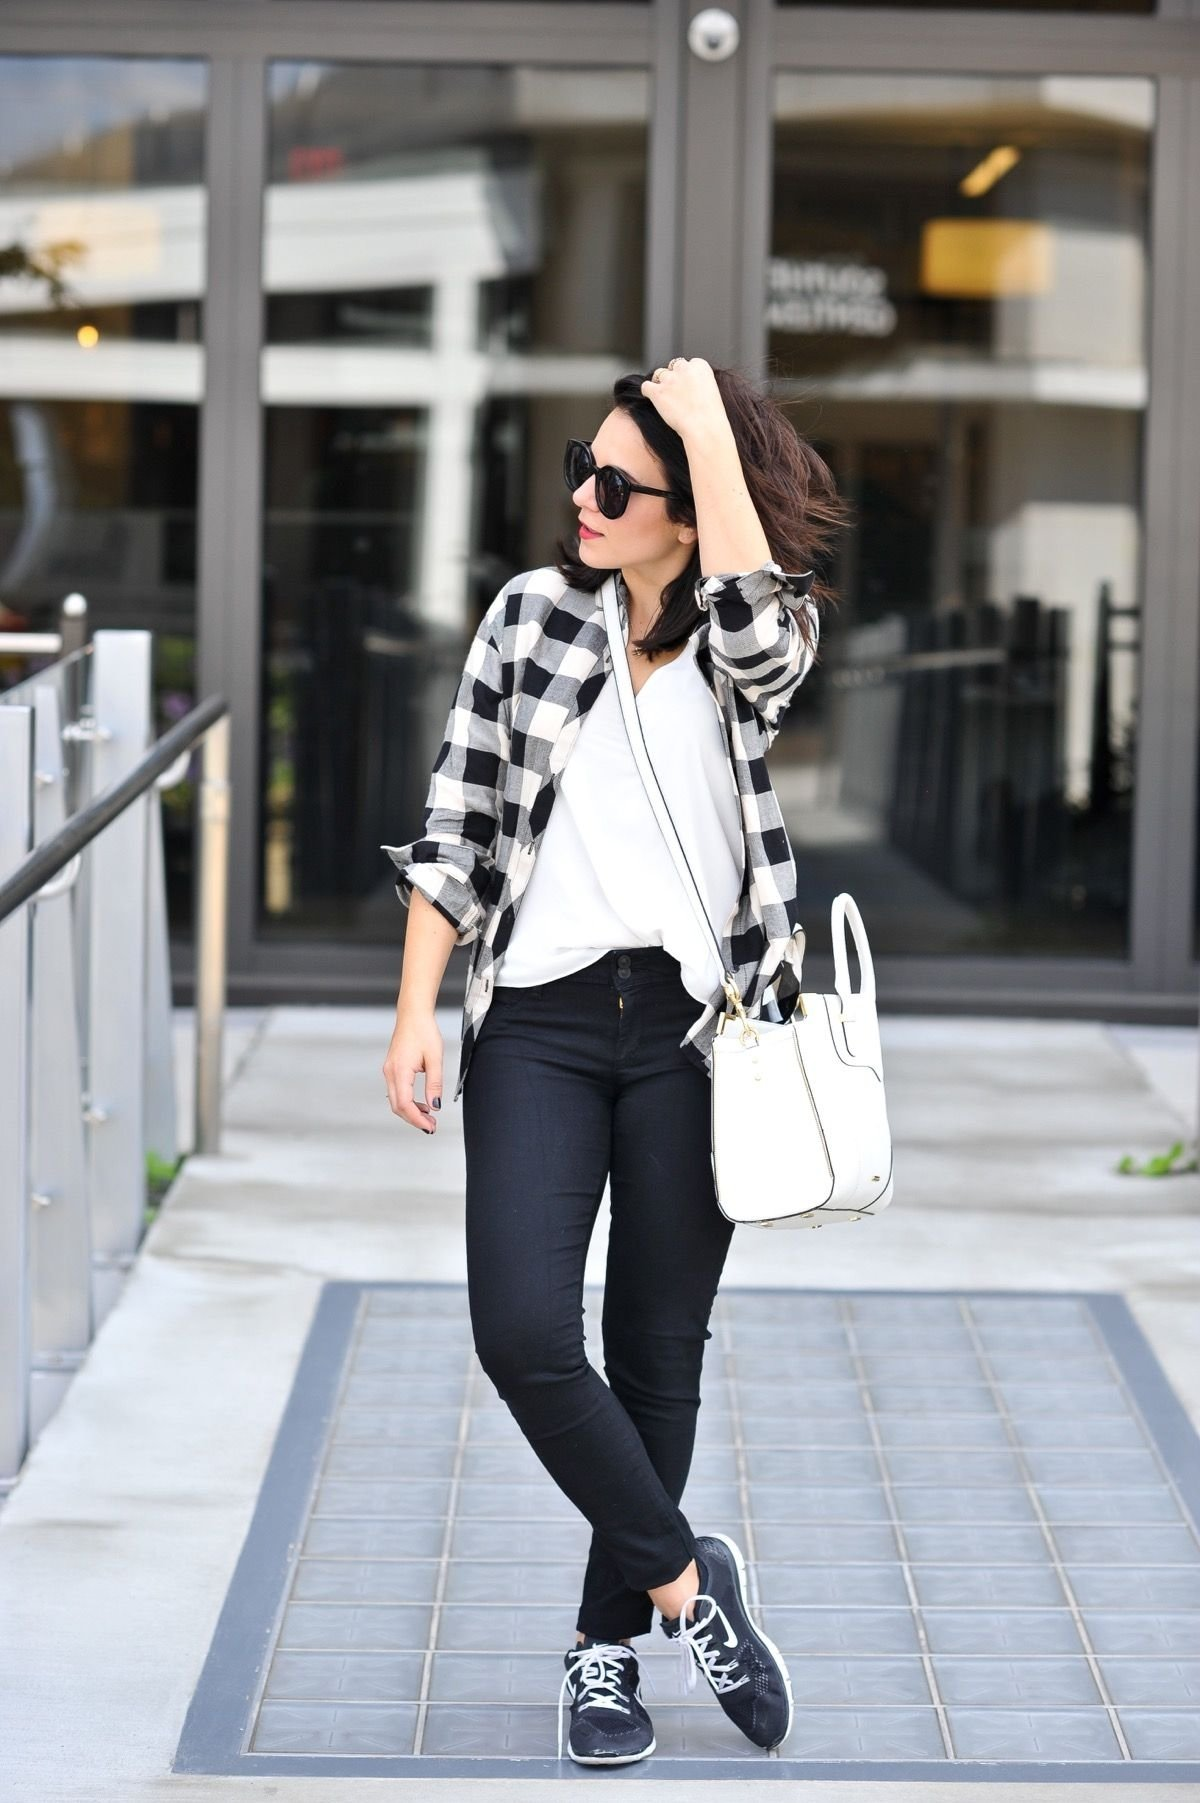 10 Unique Black And White Outfit Ideas how to style sneakers like a fashion blogger plaid fall outfits 2021